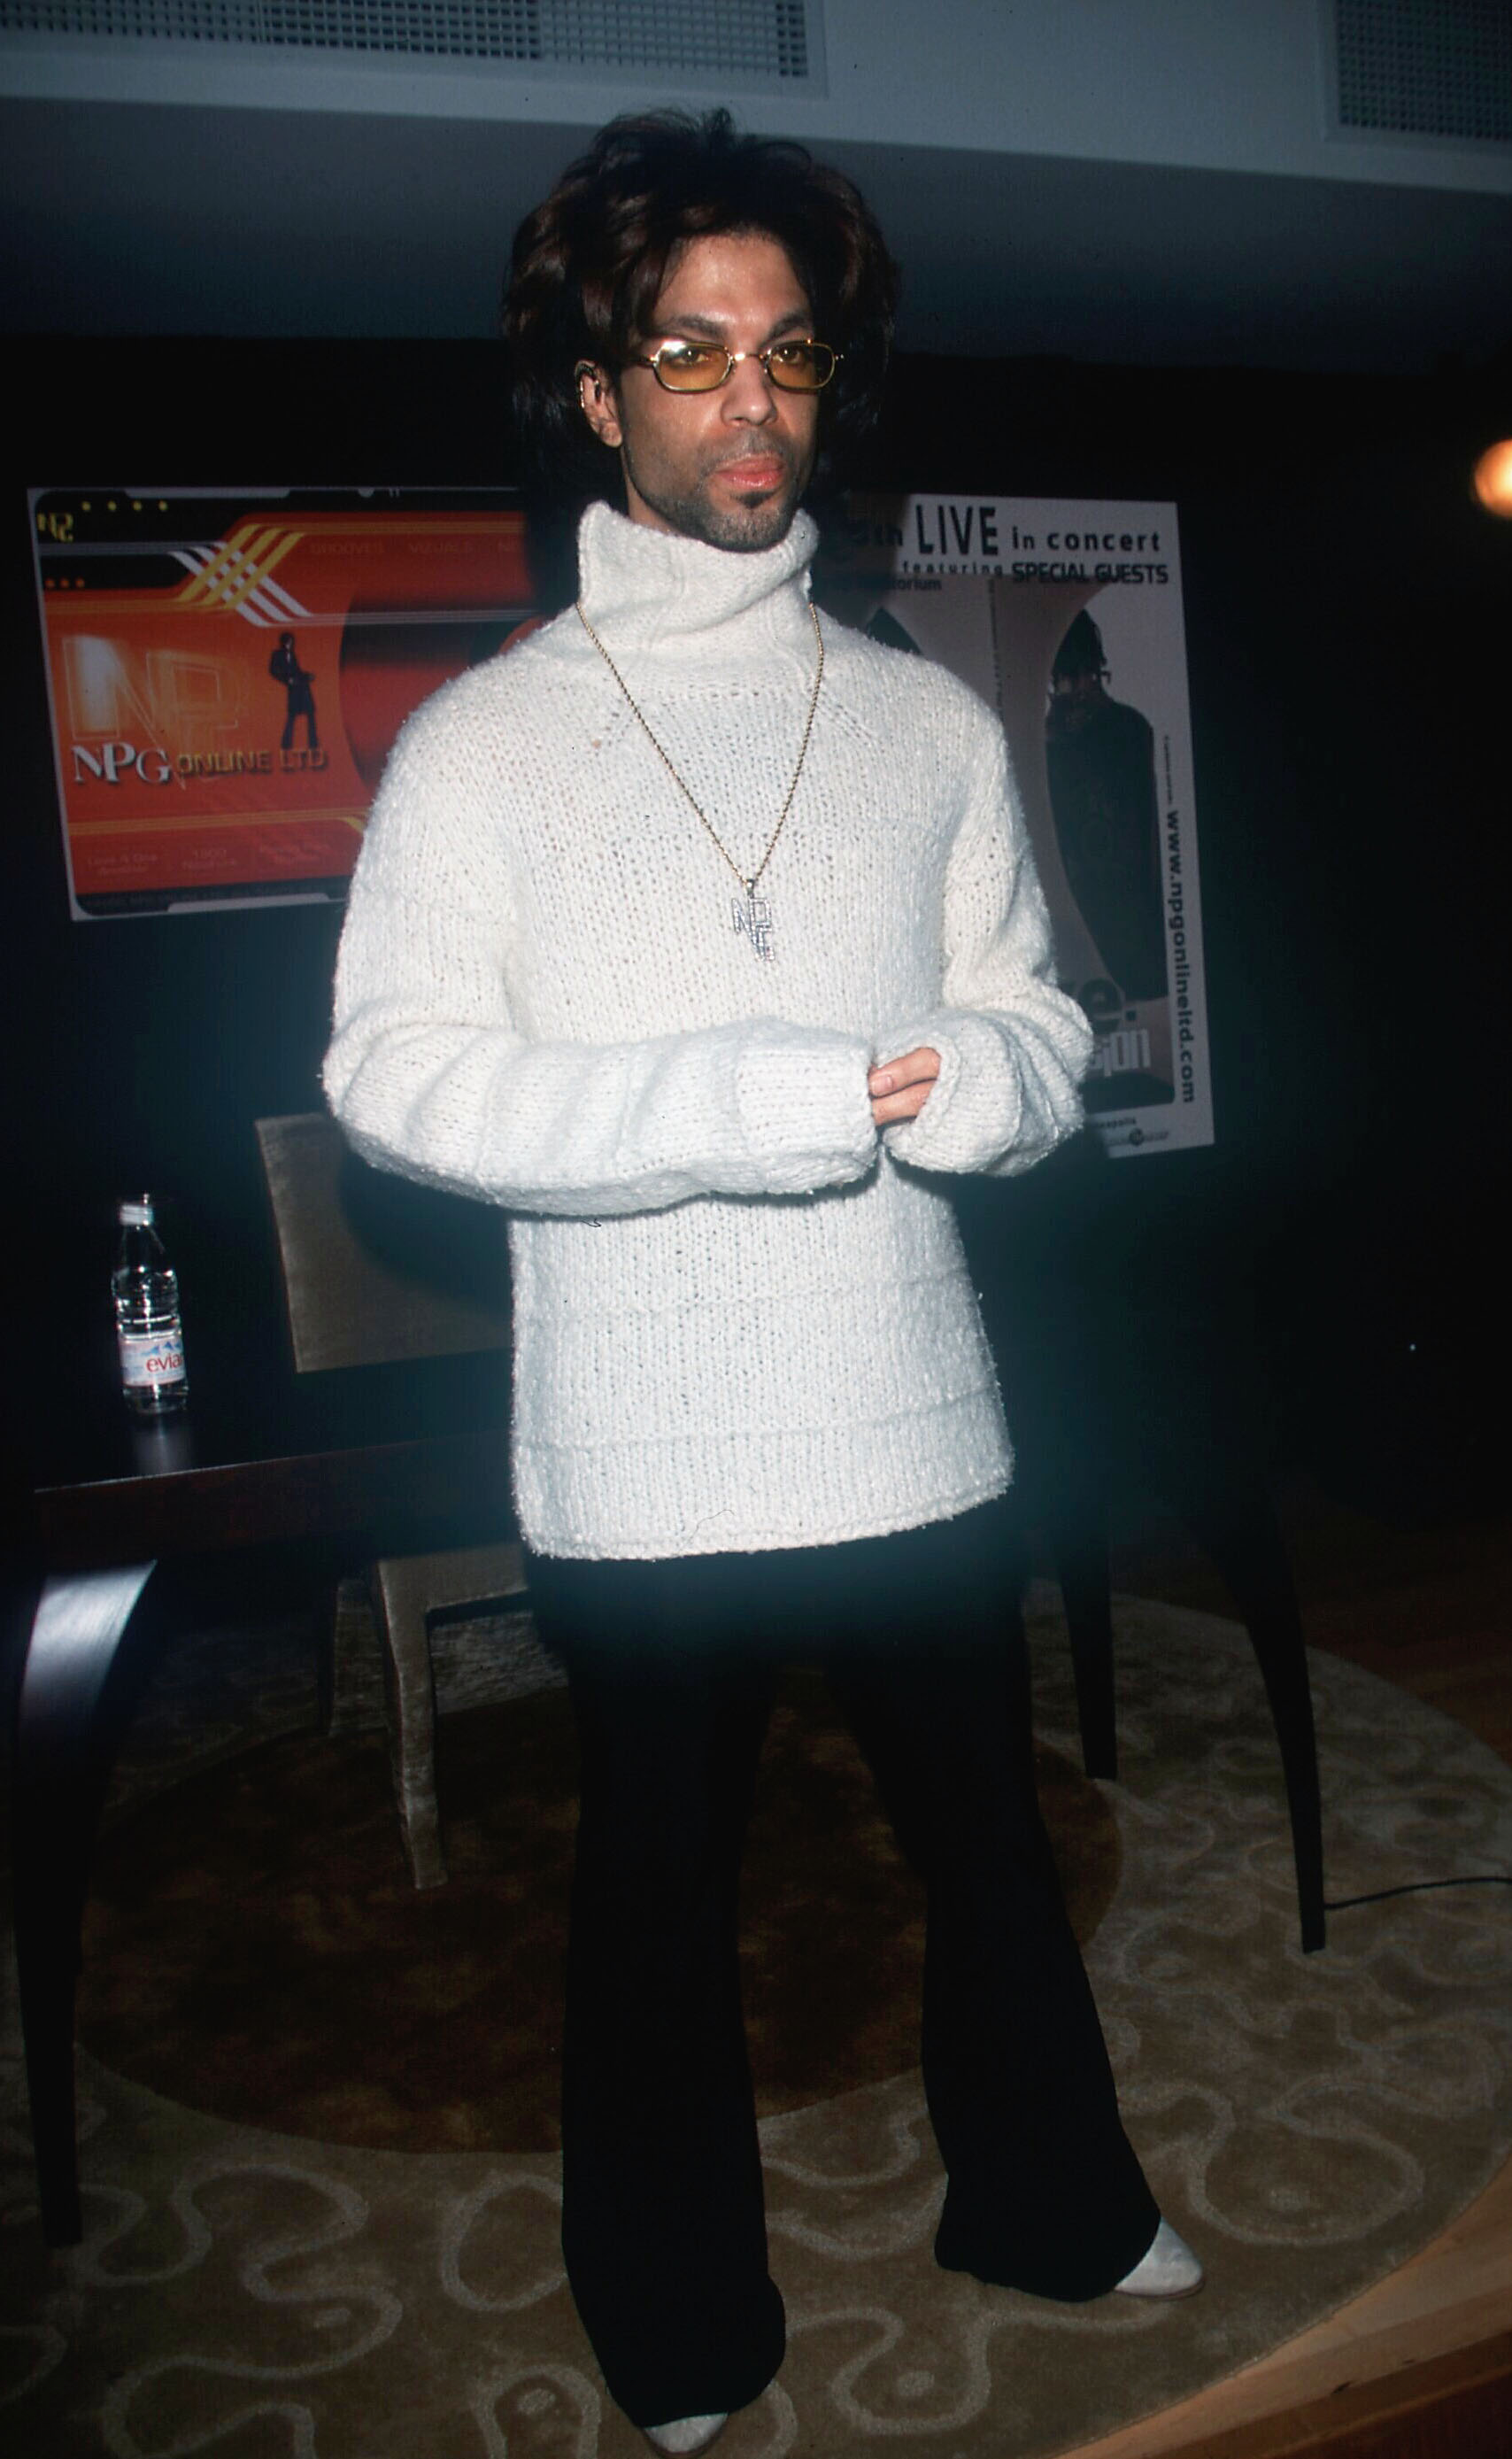 05/16/00 New York City The Artist Formely Known as Prince reclaims his name 'Prince' and announces public tours at his Paisley Park Studio, during a press conference in New York City. Photo by Evan Agostini/ImageDirect